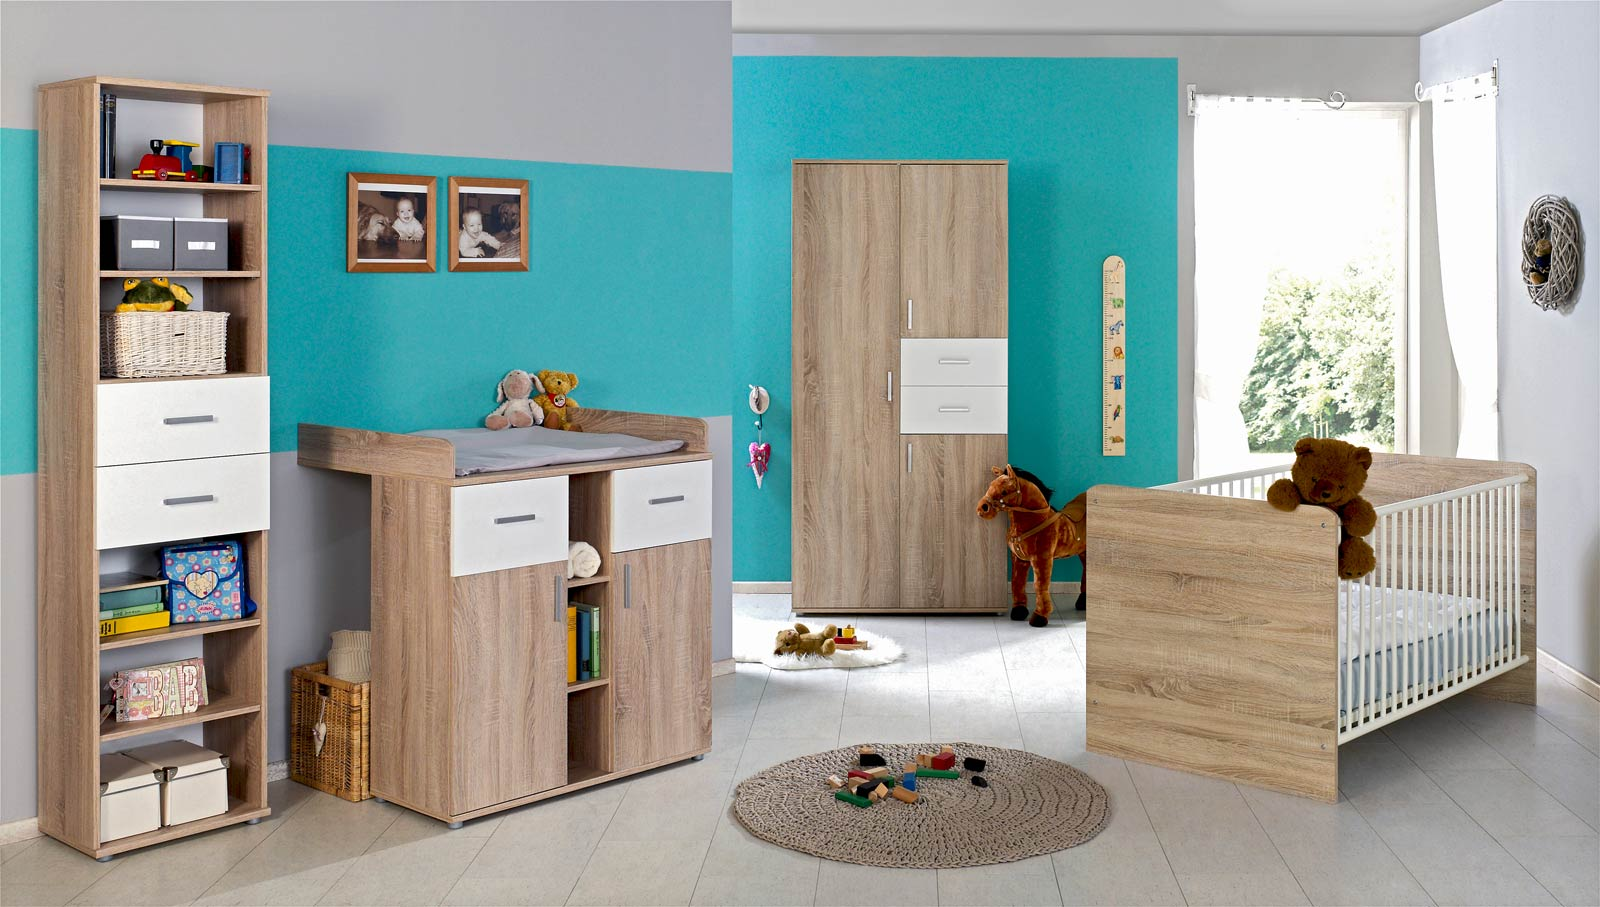 kinderzimmer komplett set ikea das beste aus wohndesign und m bel inspiration. Black Bedroom Furniture Sets. Home Design Ideas